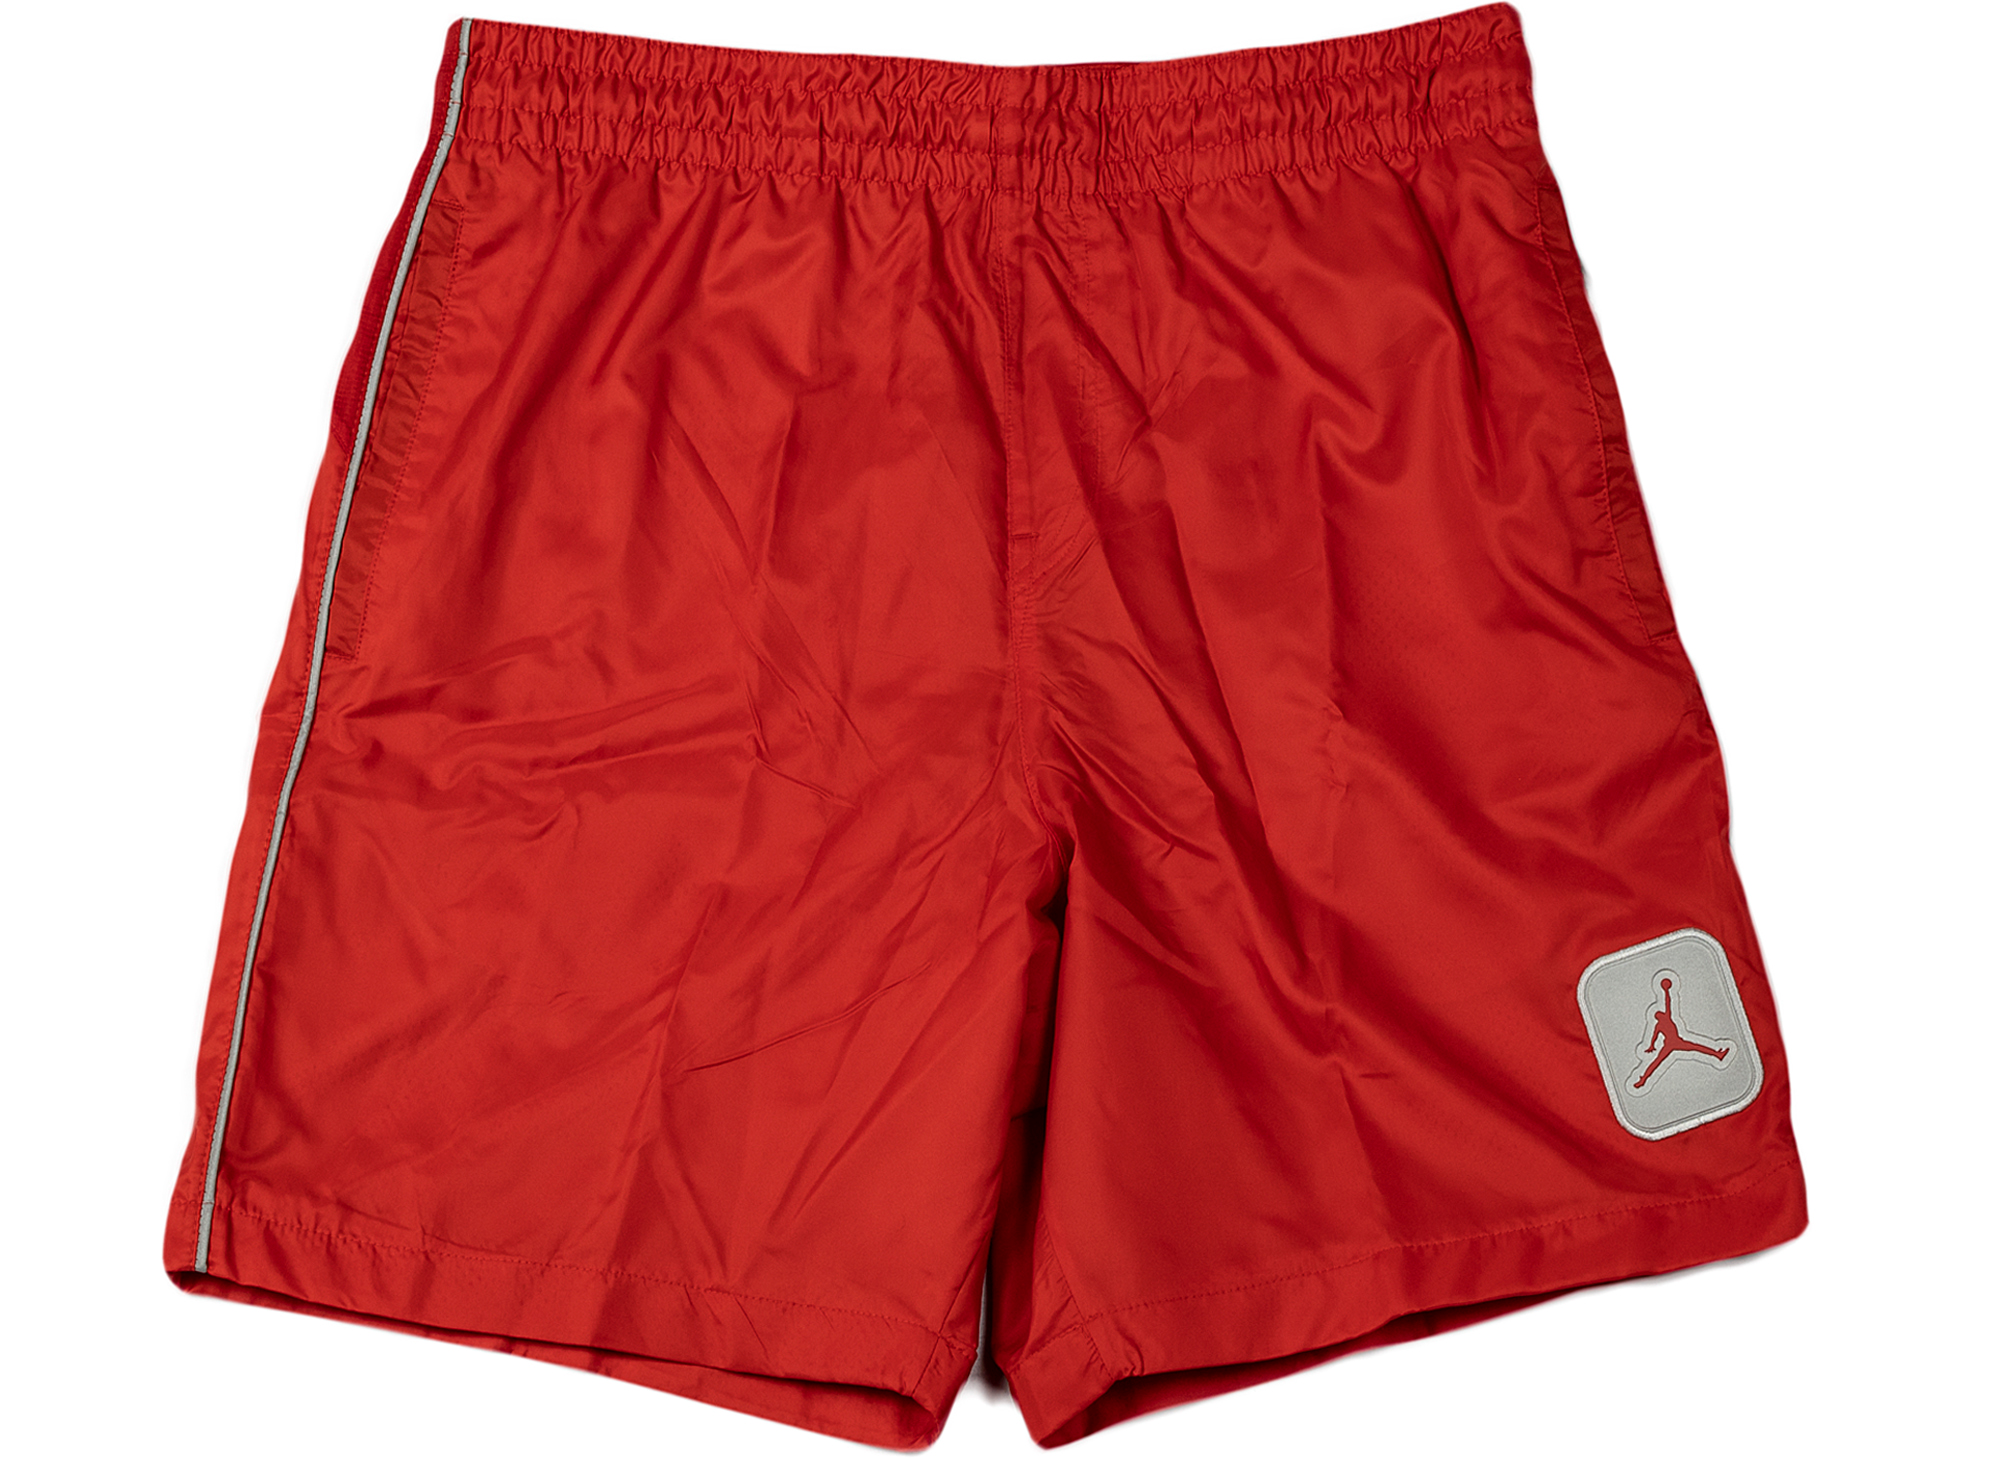 Jordan Legacy AJ5 Air Jordan 5 Red Shorts